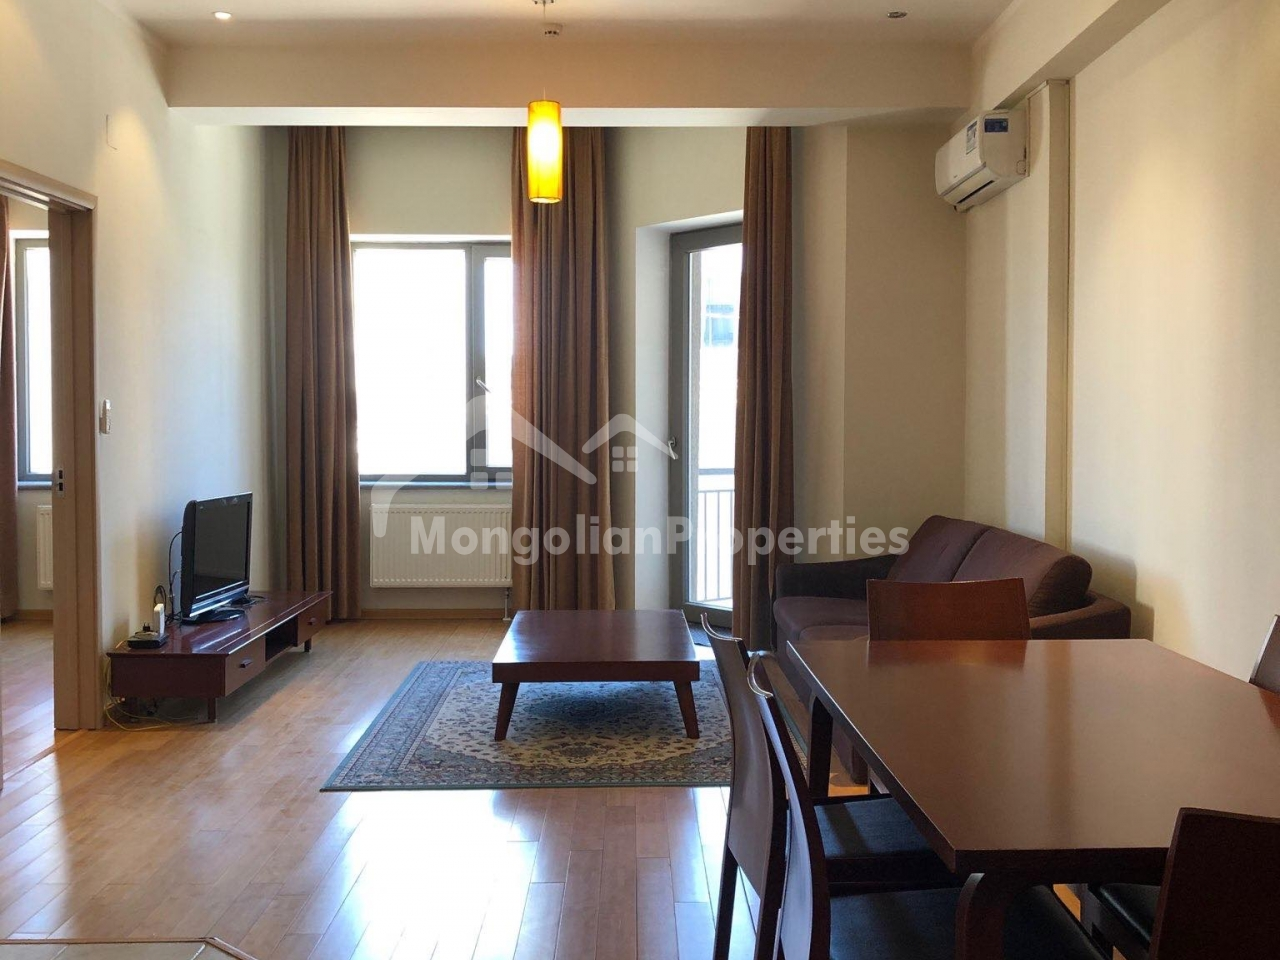 FOR RENT: FULLY FURNISHED, COZY 2 BEDROOM APARTMENT AT REGENCY RESIDENCE